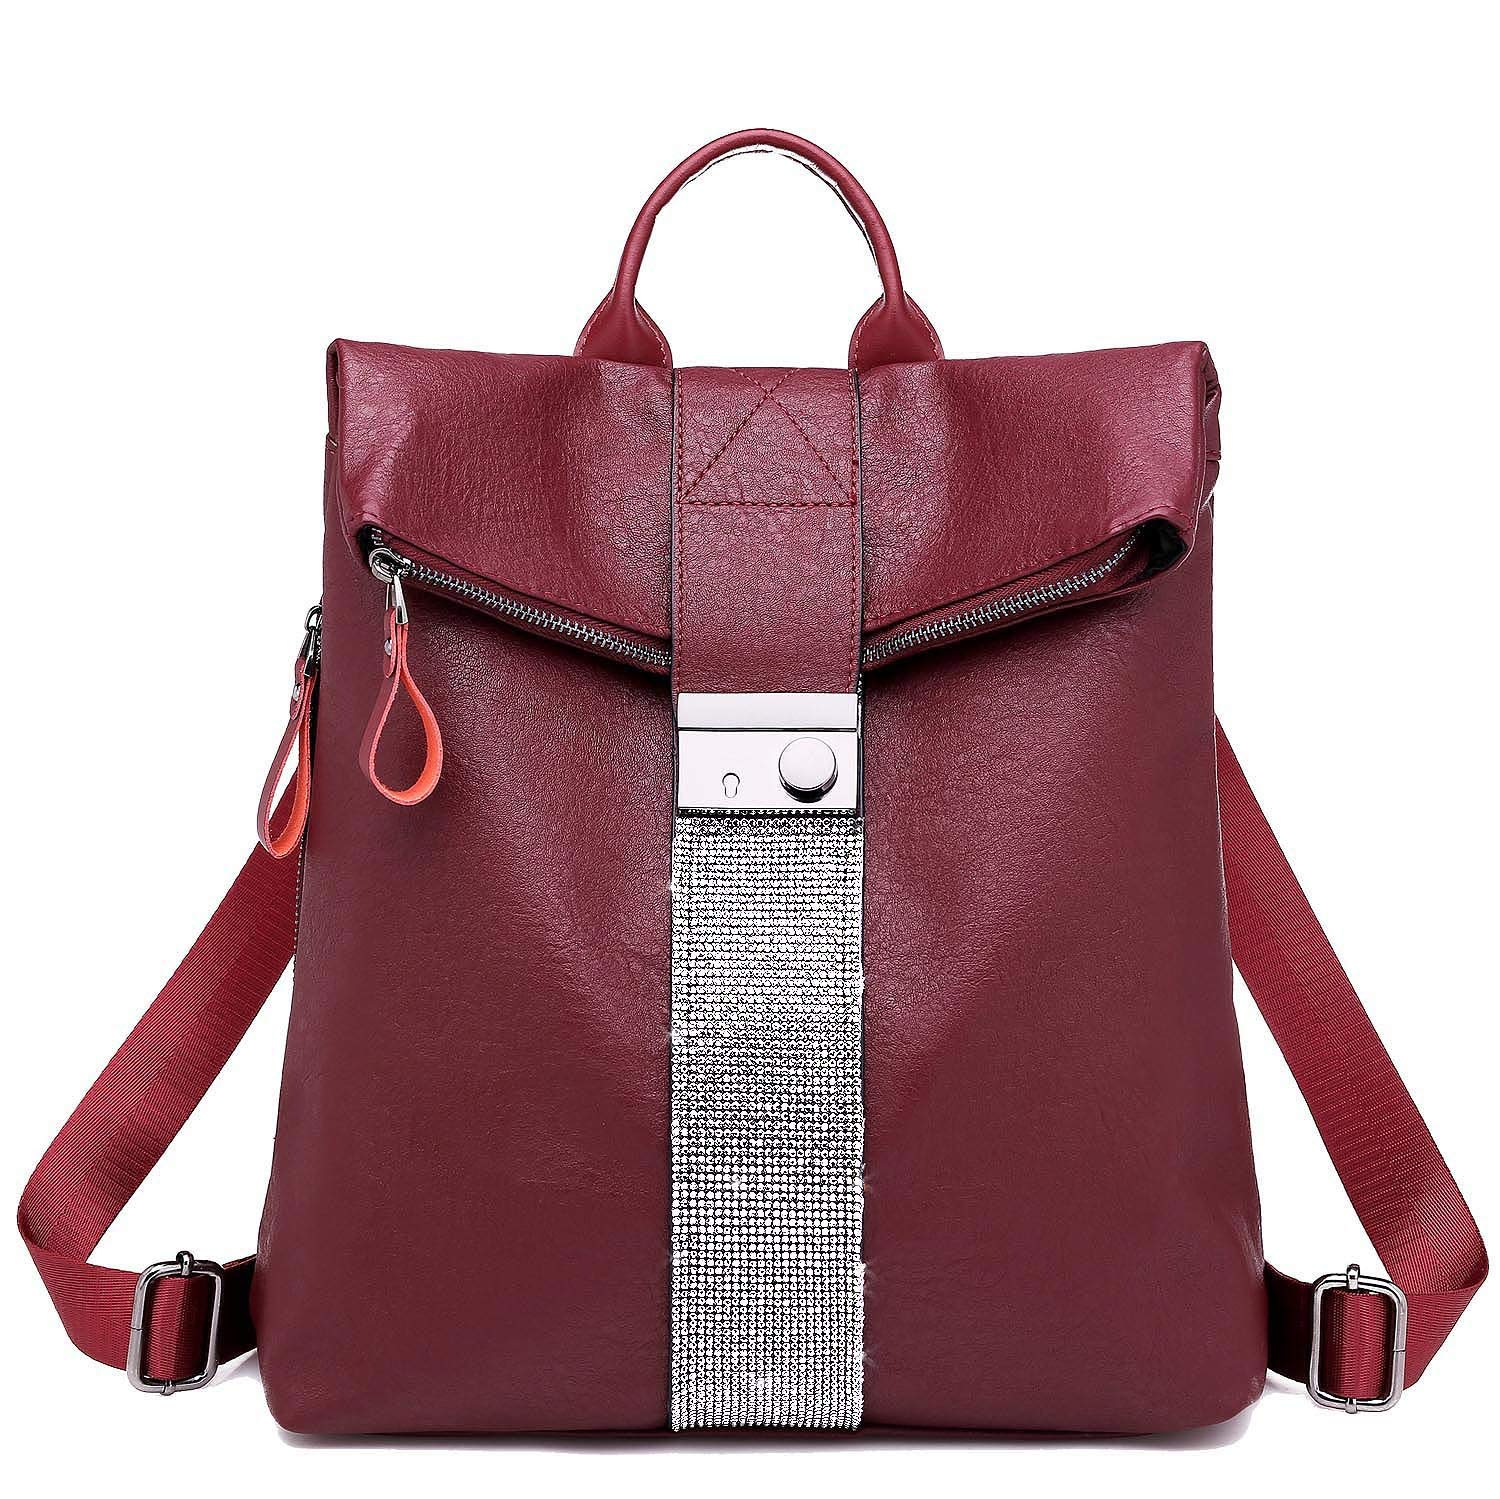 SYKT Backpack Purse for Women Fashion School PU Leather Purse and Hangbags Shoulder Bags product image